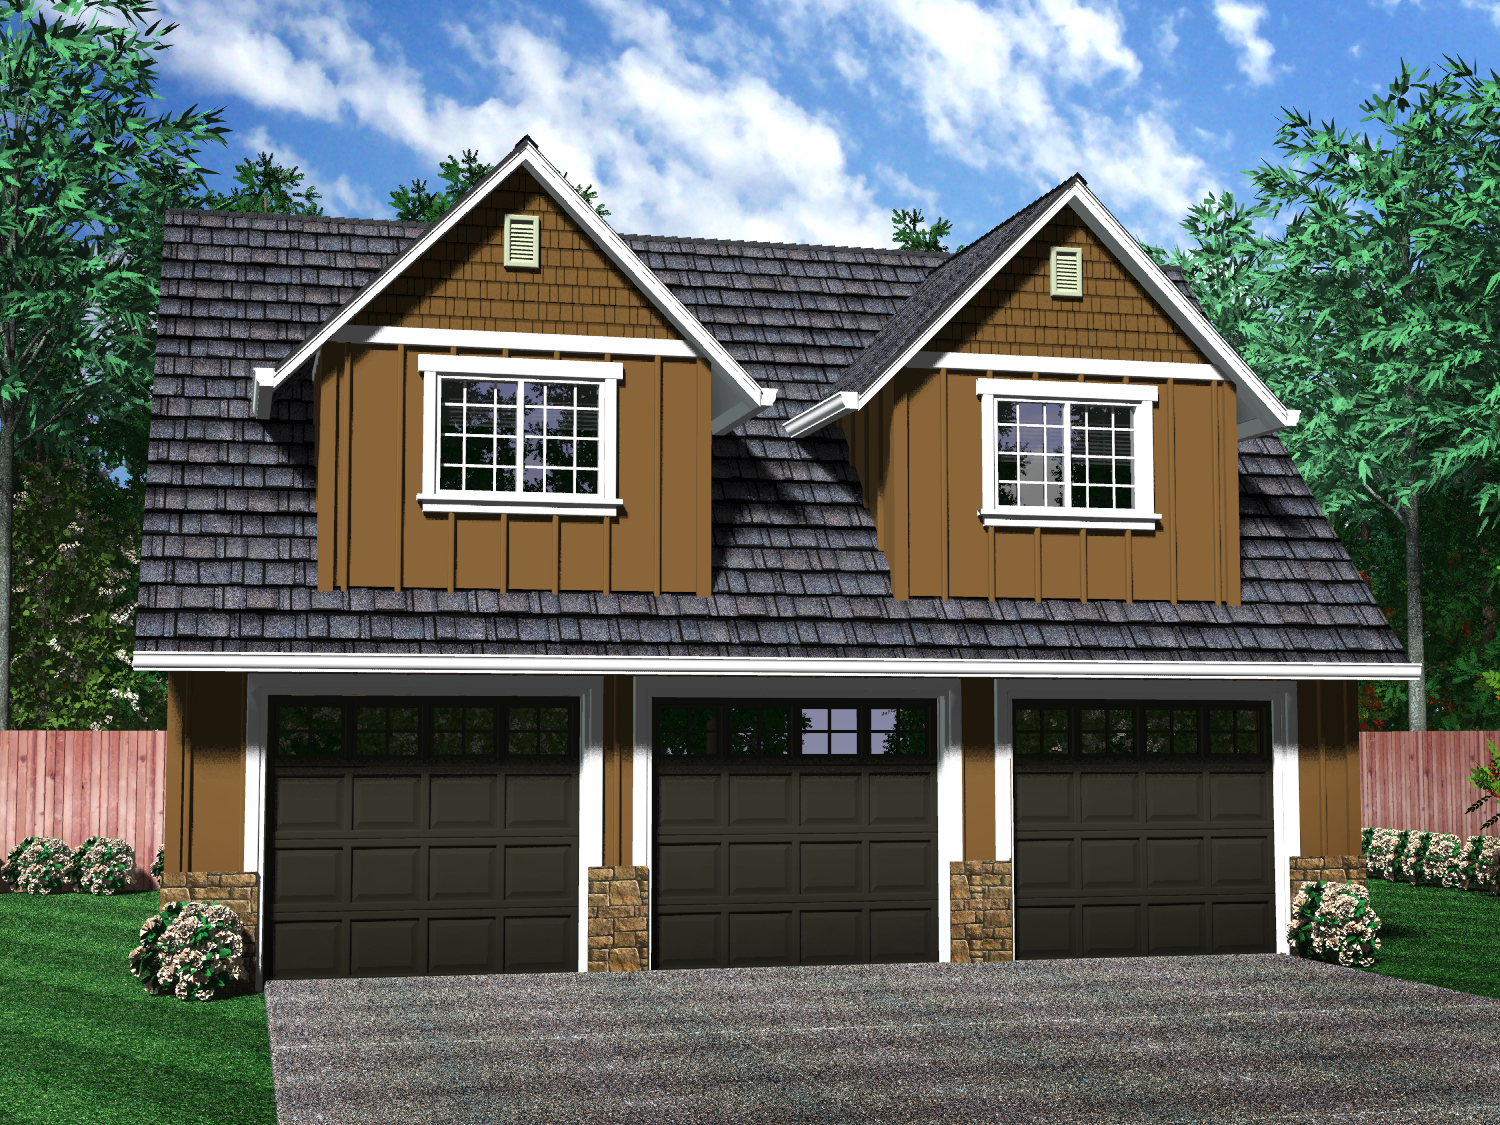 Detached garages 3 bay garage apartment plans